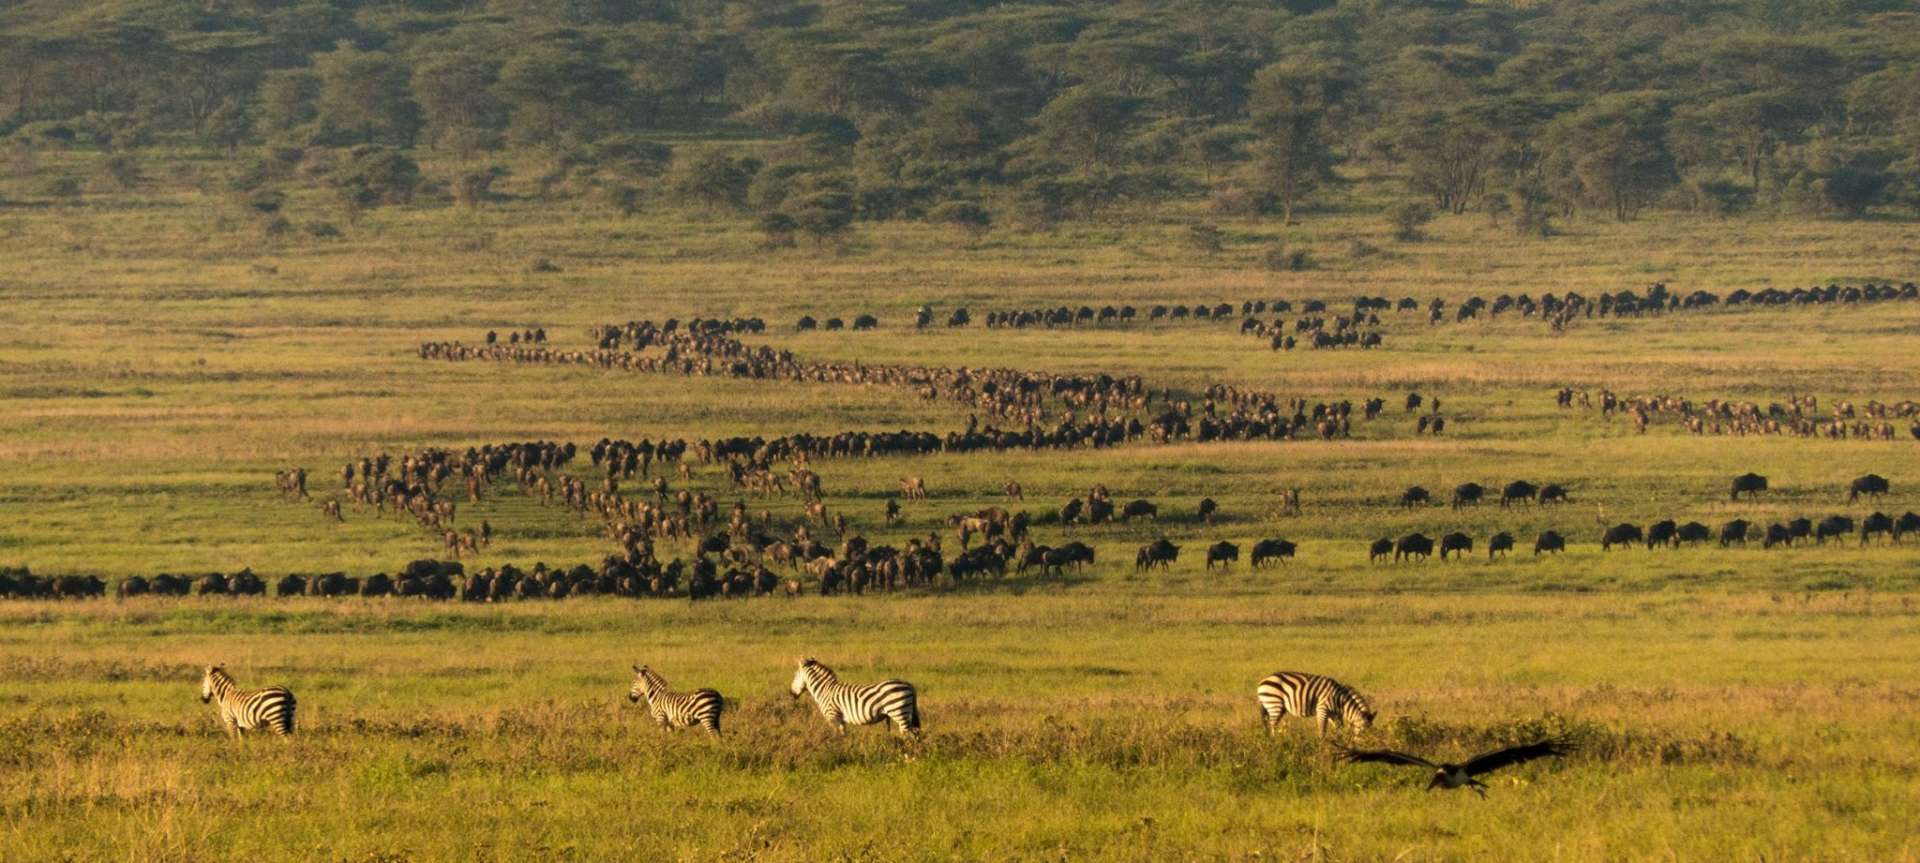 The Serengeti is regarded as the greatest game reserve on the planet